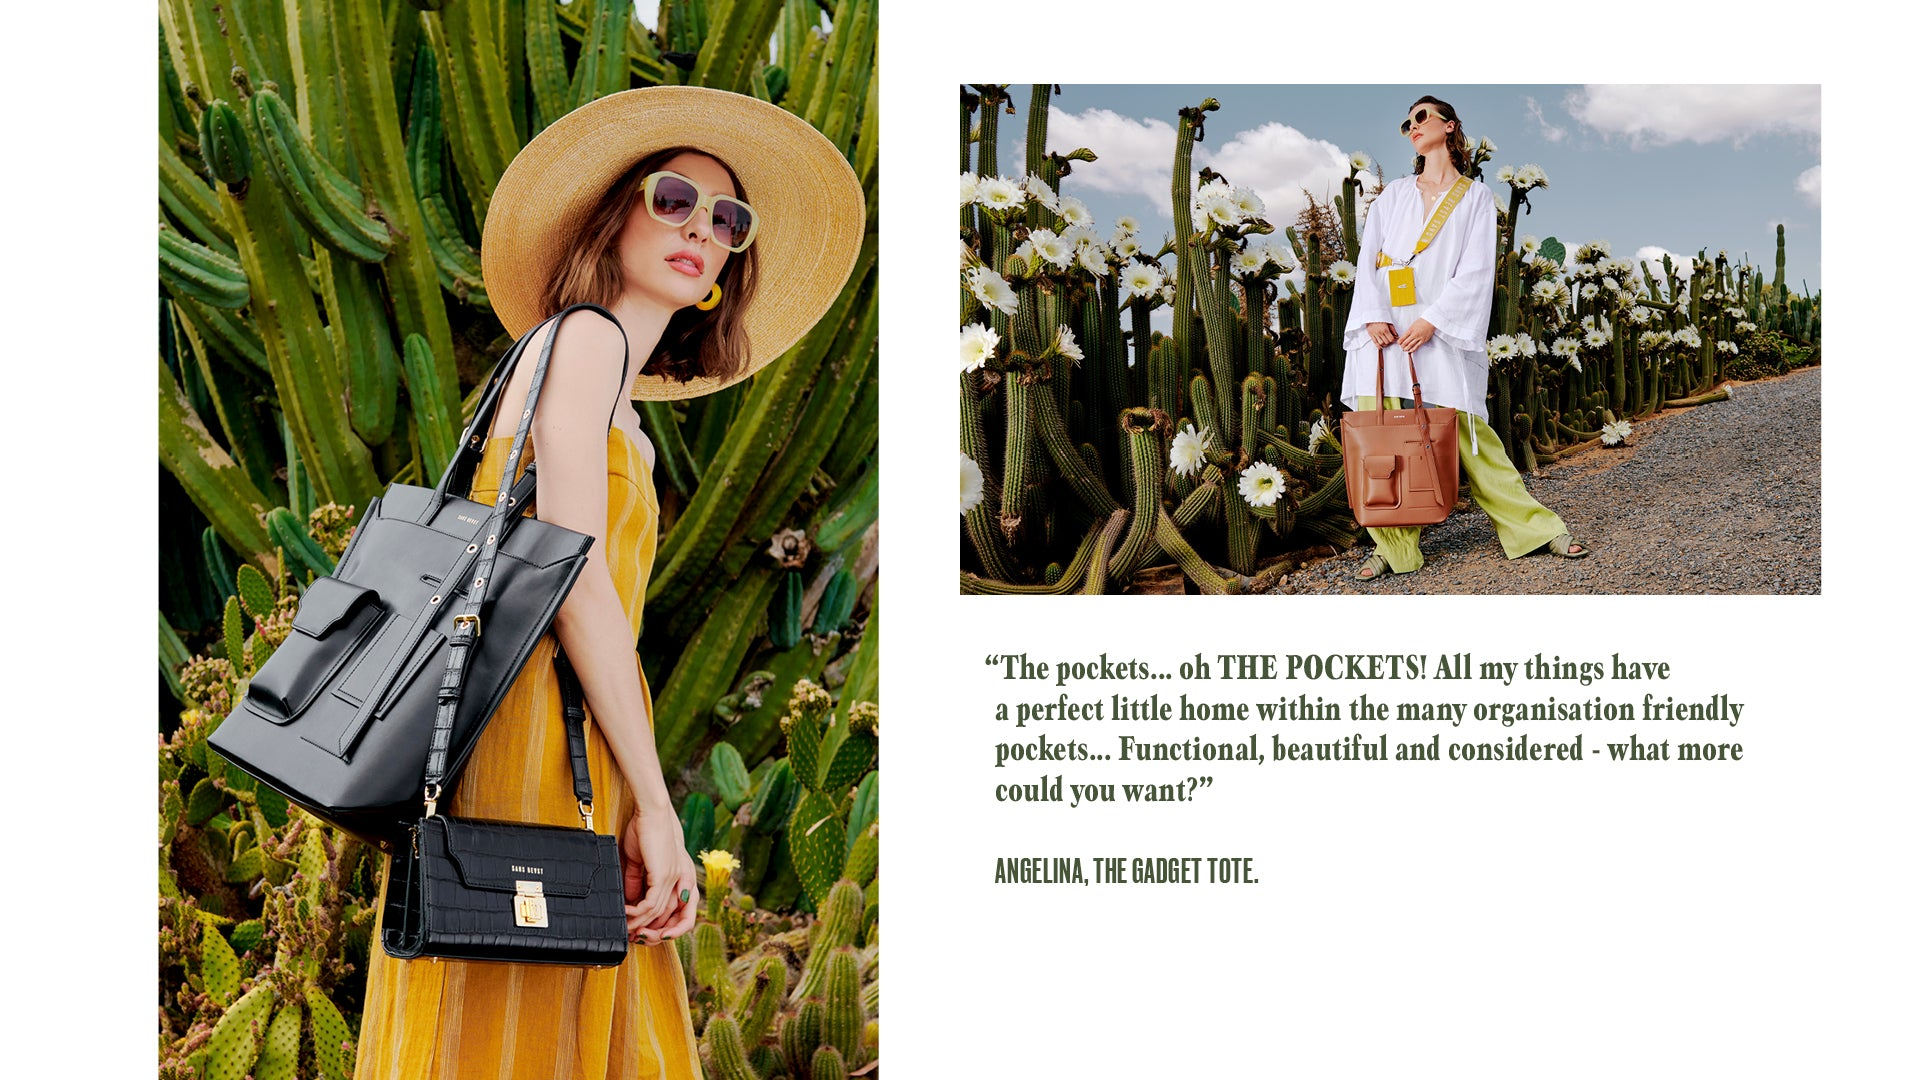 """Two images, side by side, of Juliette holding a Noir + Ginger Gadget Tote. Type is a review of the product: """"The pockets... oh THE POCKETS! All my things have  a perfect little home within the many organisation friendly  pockets... Functional, beautiful and considered - what more  could you want?""""  Angelina, The Gadget Tote."""